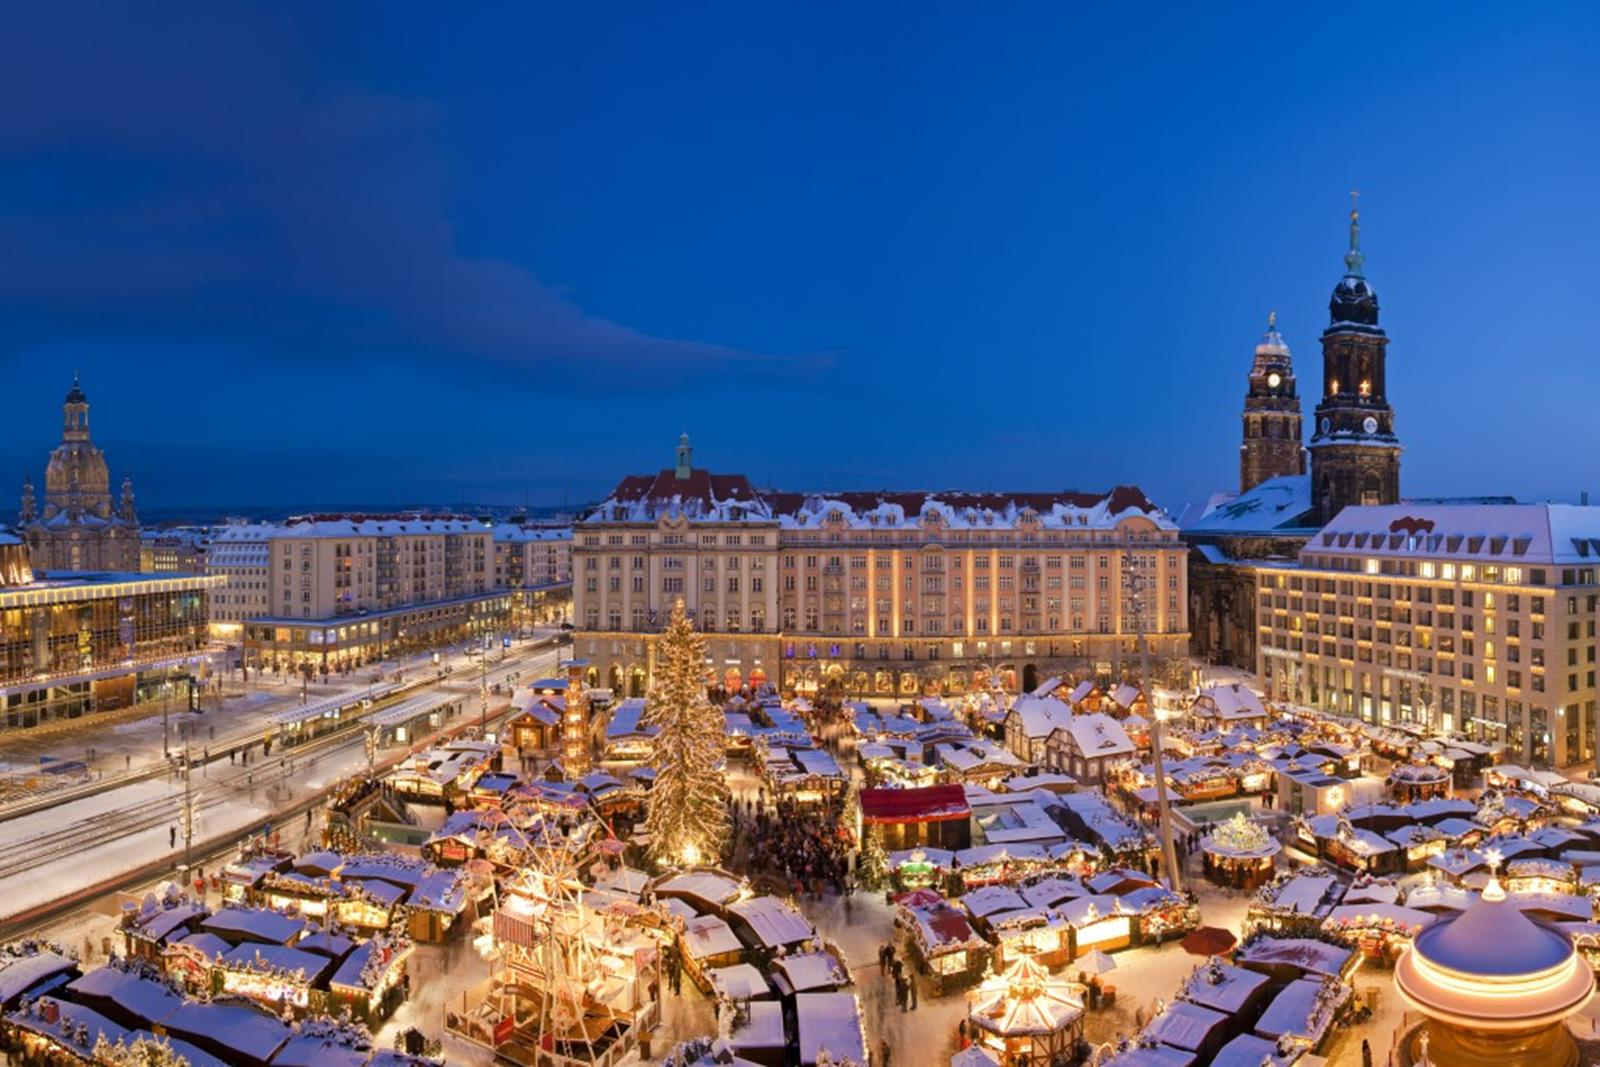 Before Christmas the Dresden Striezelmarkt shows the very best of Germany's Christmas traditions © Sylvio Dittrich